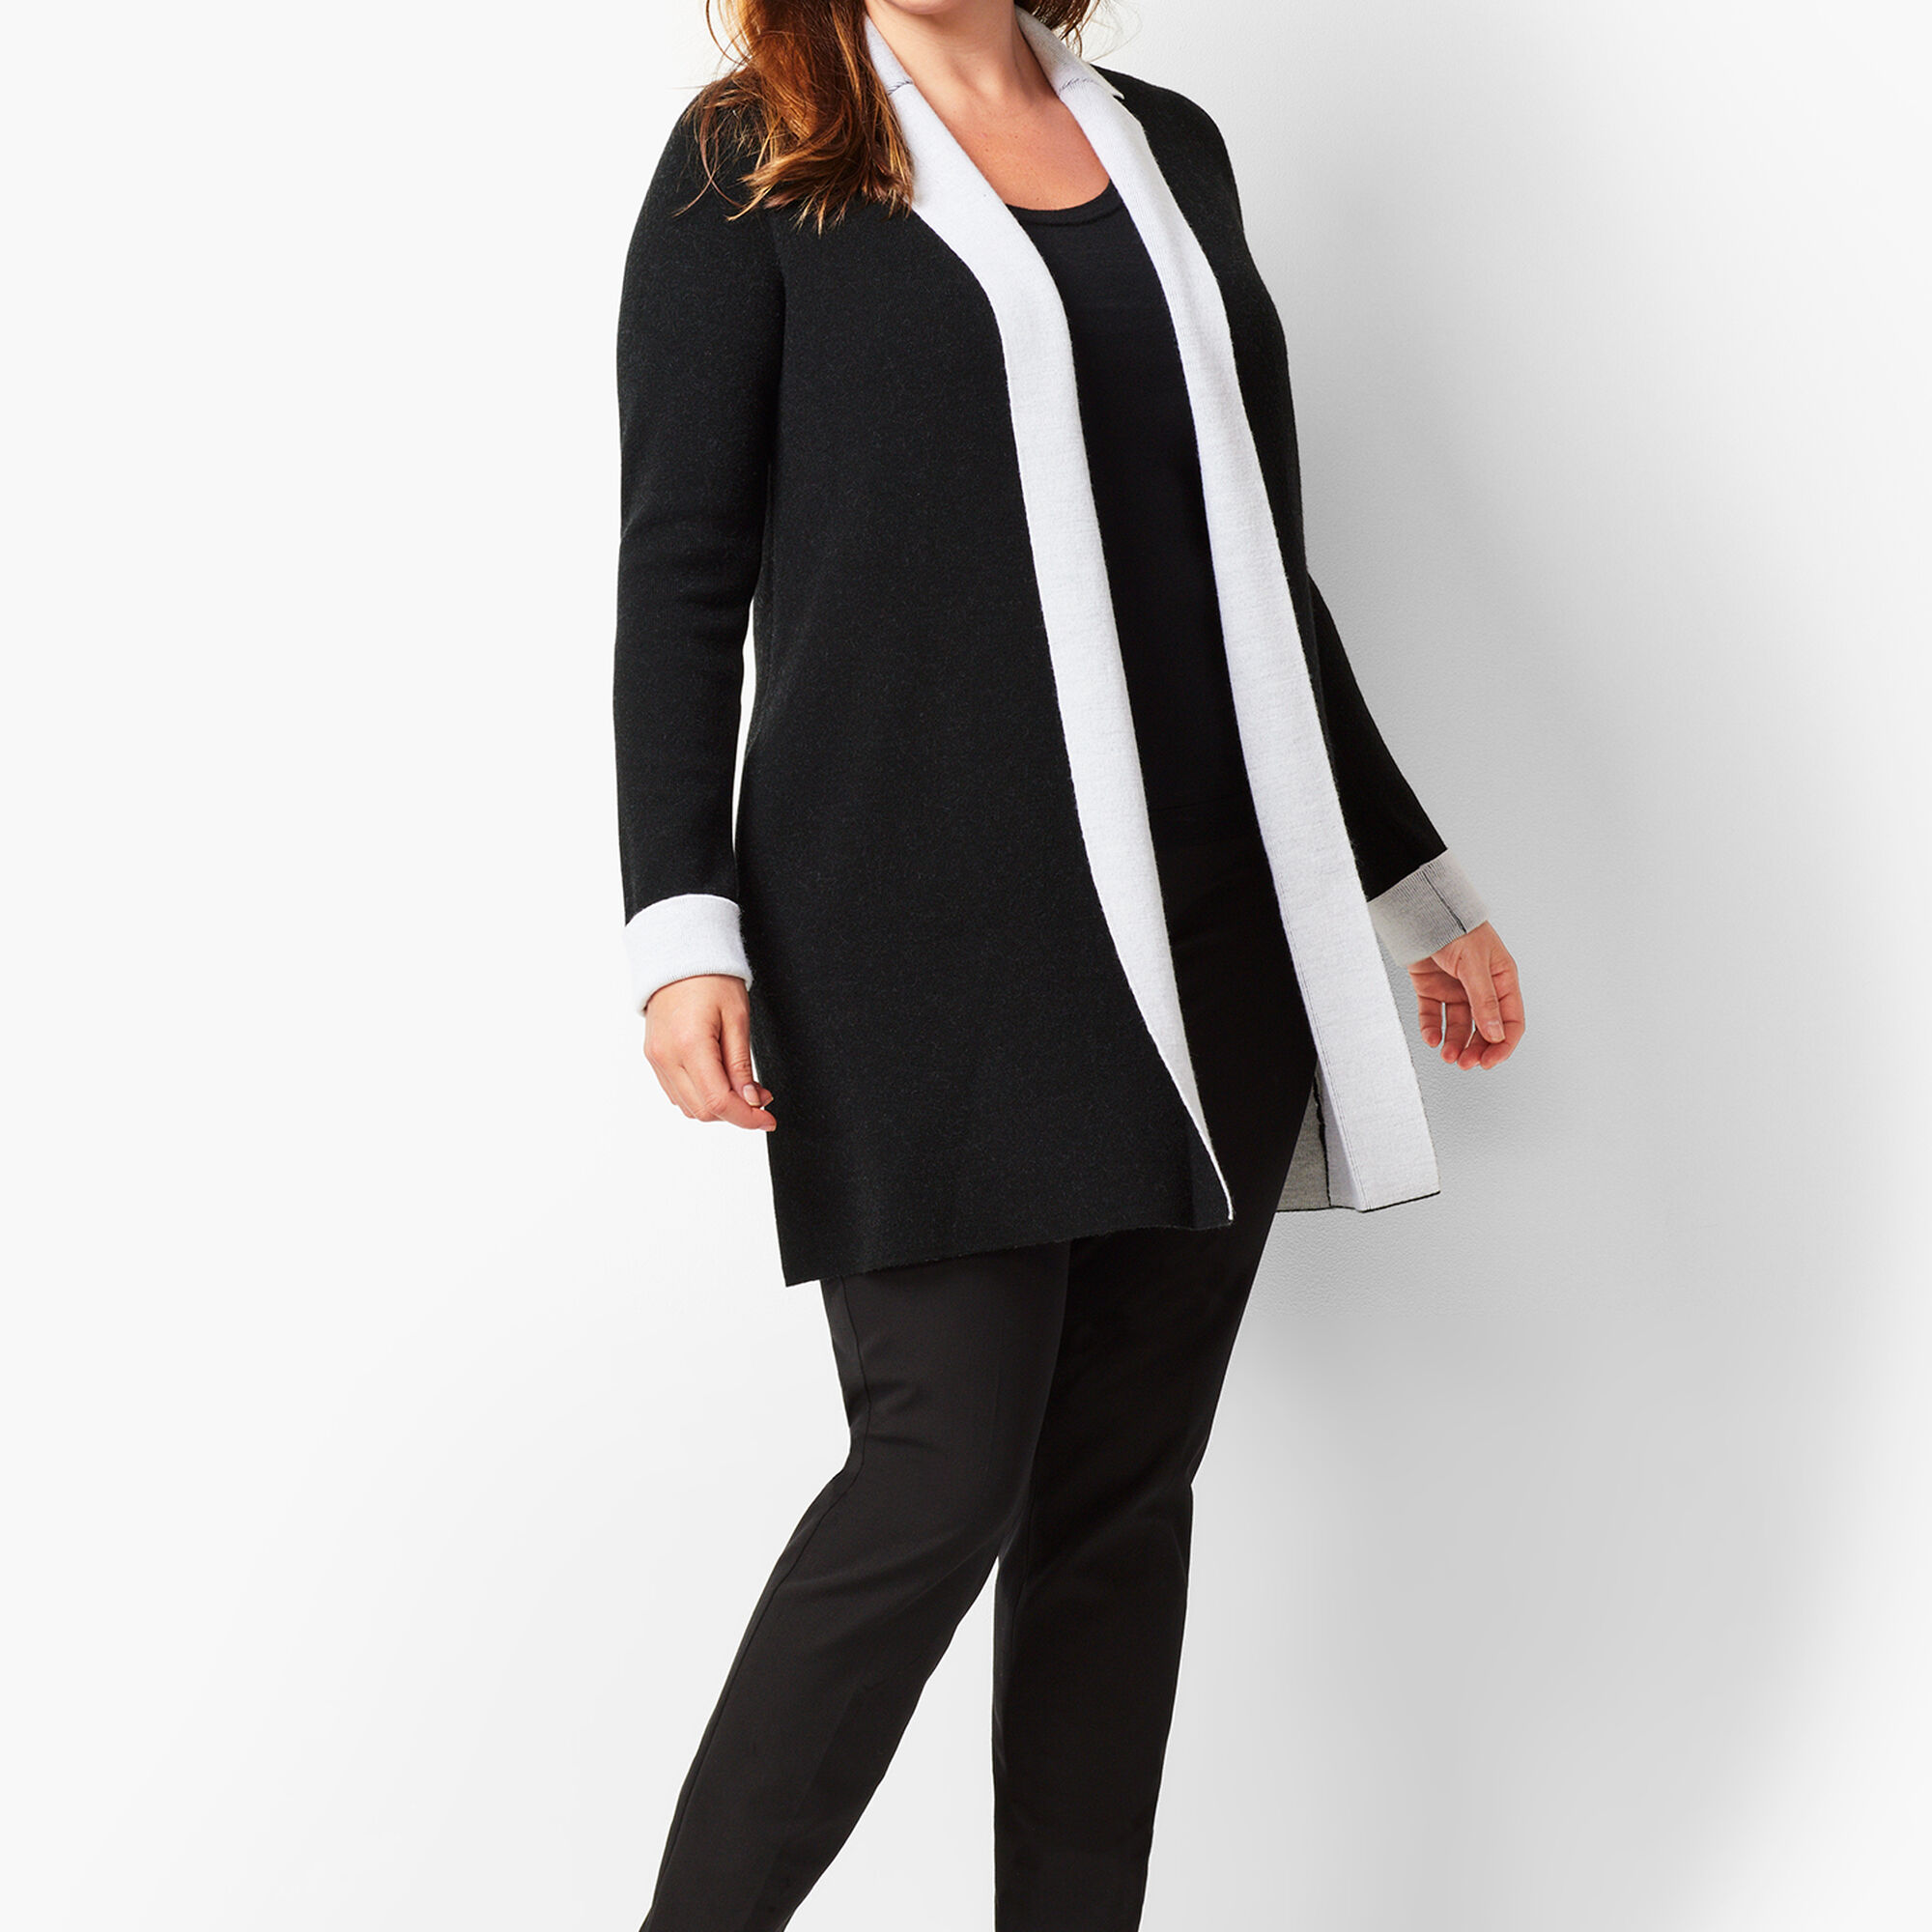 f31e17f0effa Plus Size Merino Double-Knit Cardigan Opens a New Window.